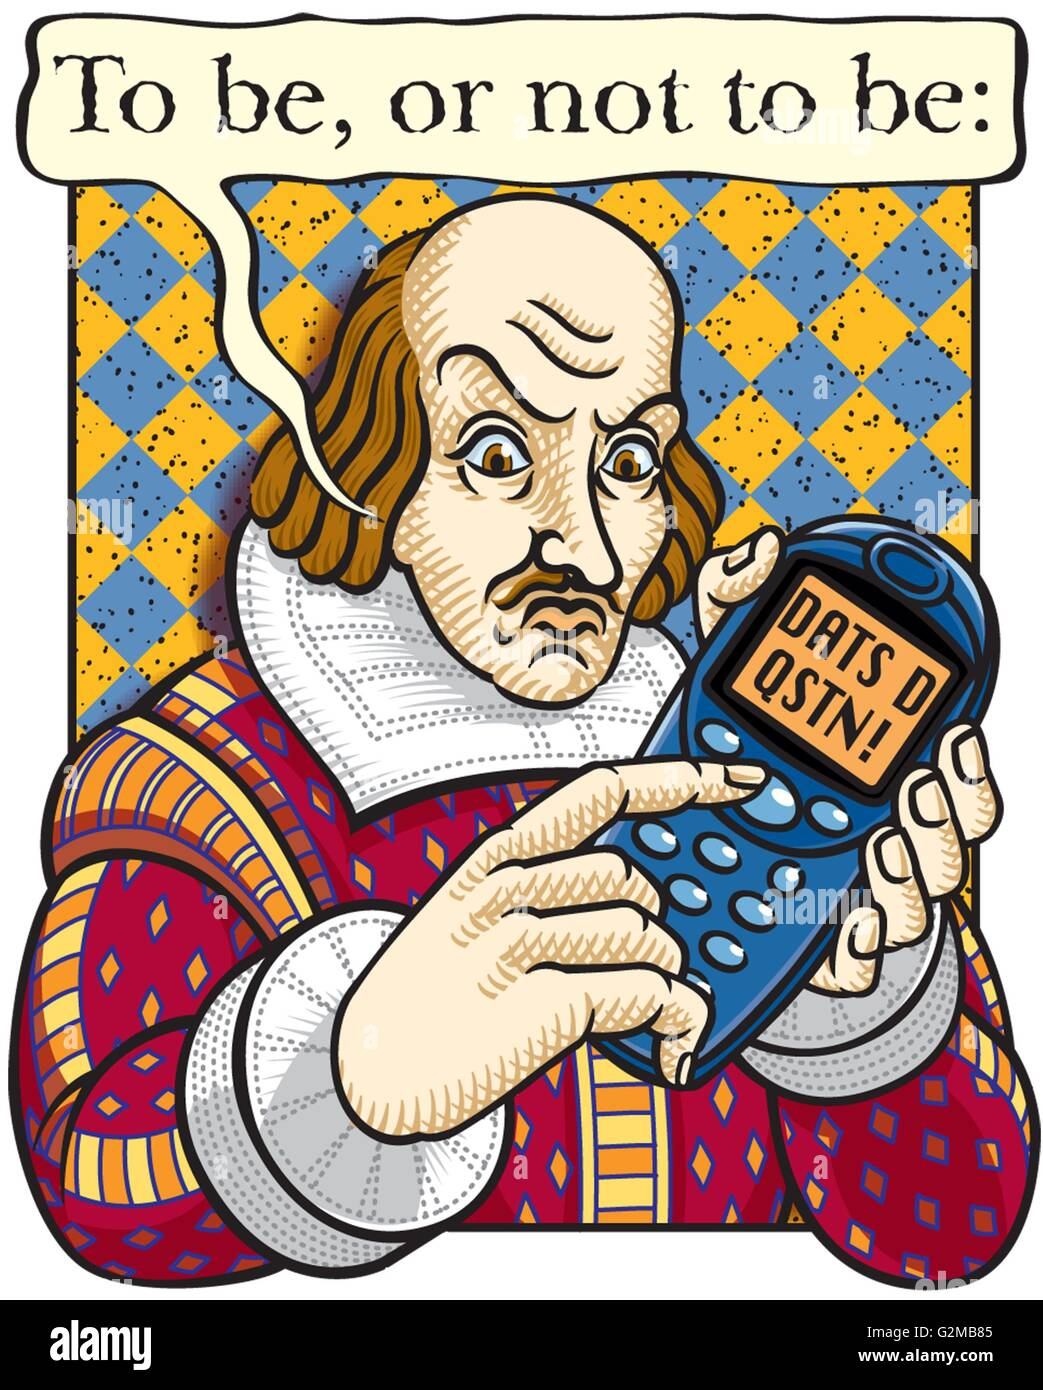 William Shakespeare with mobile phone - Stock Image